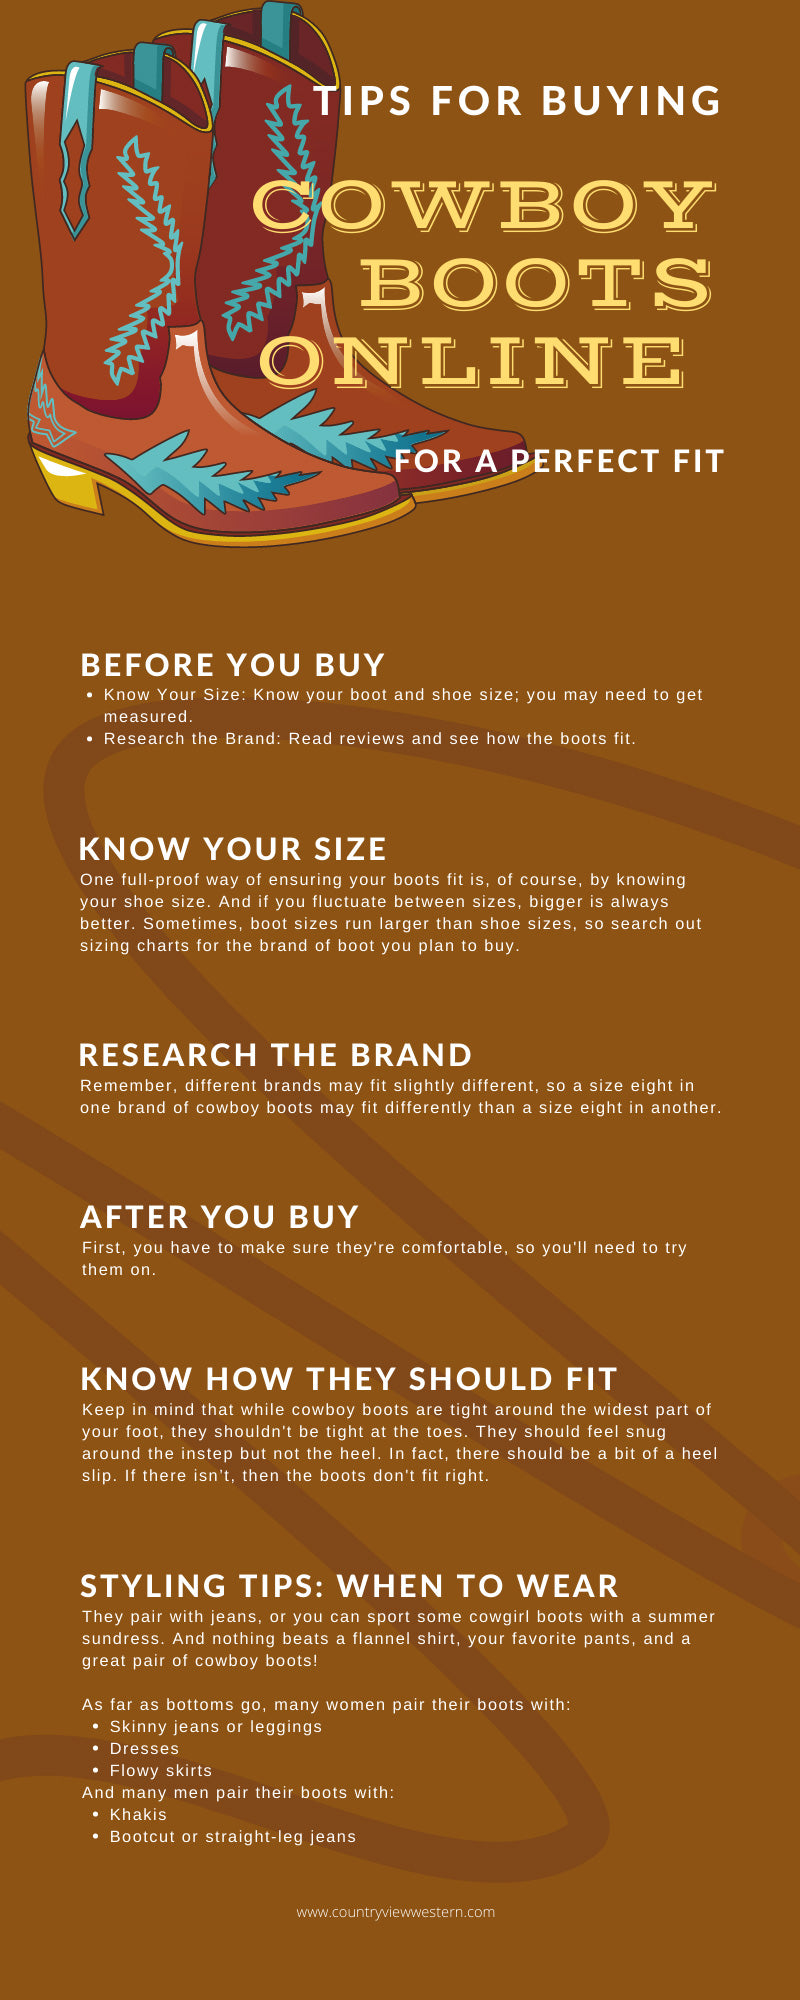 Tips for Buying Cowboy Boots Online for a Perfect Fit